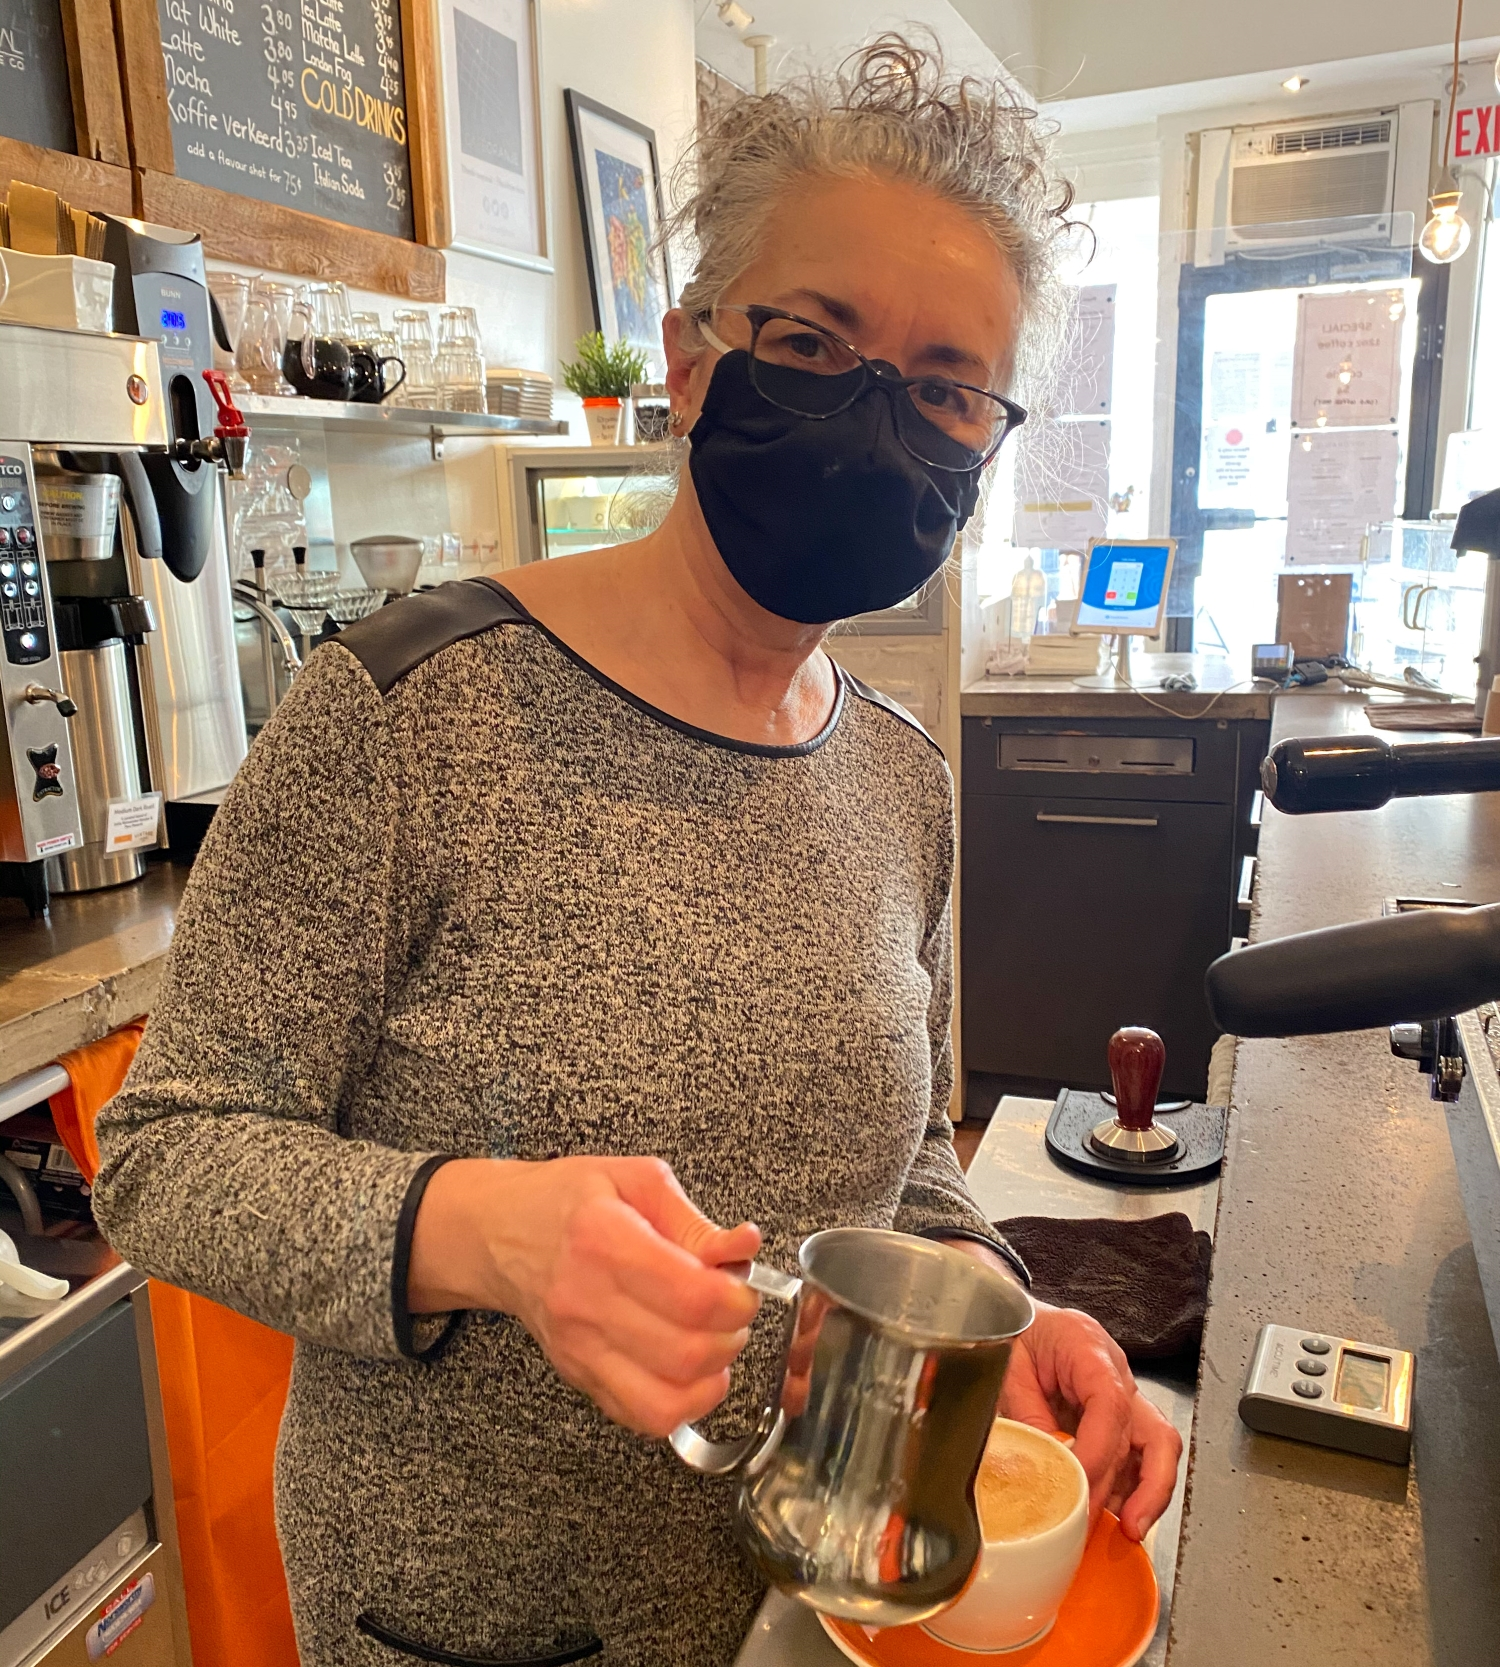 Mina owner of Cafe Oranje pouring a coffee - International Women's Day